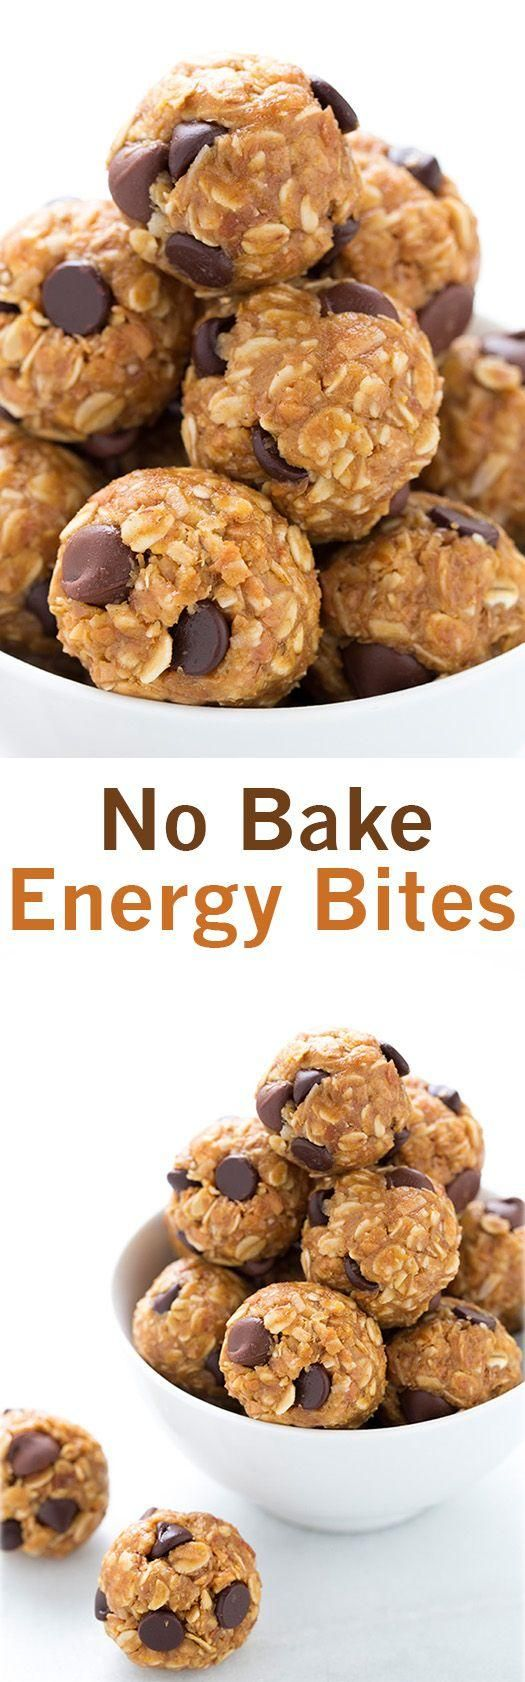 No Bake Energy Bites - these are the best snack EVER, and they're healthy! I make them all the time!